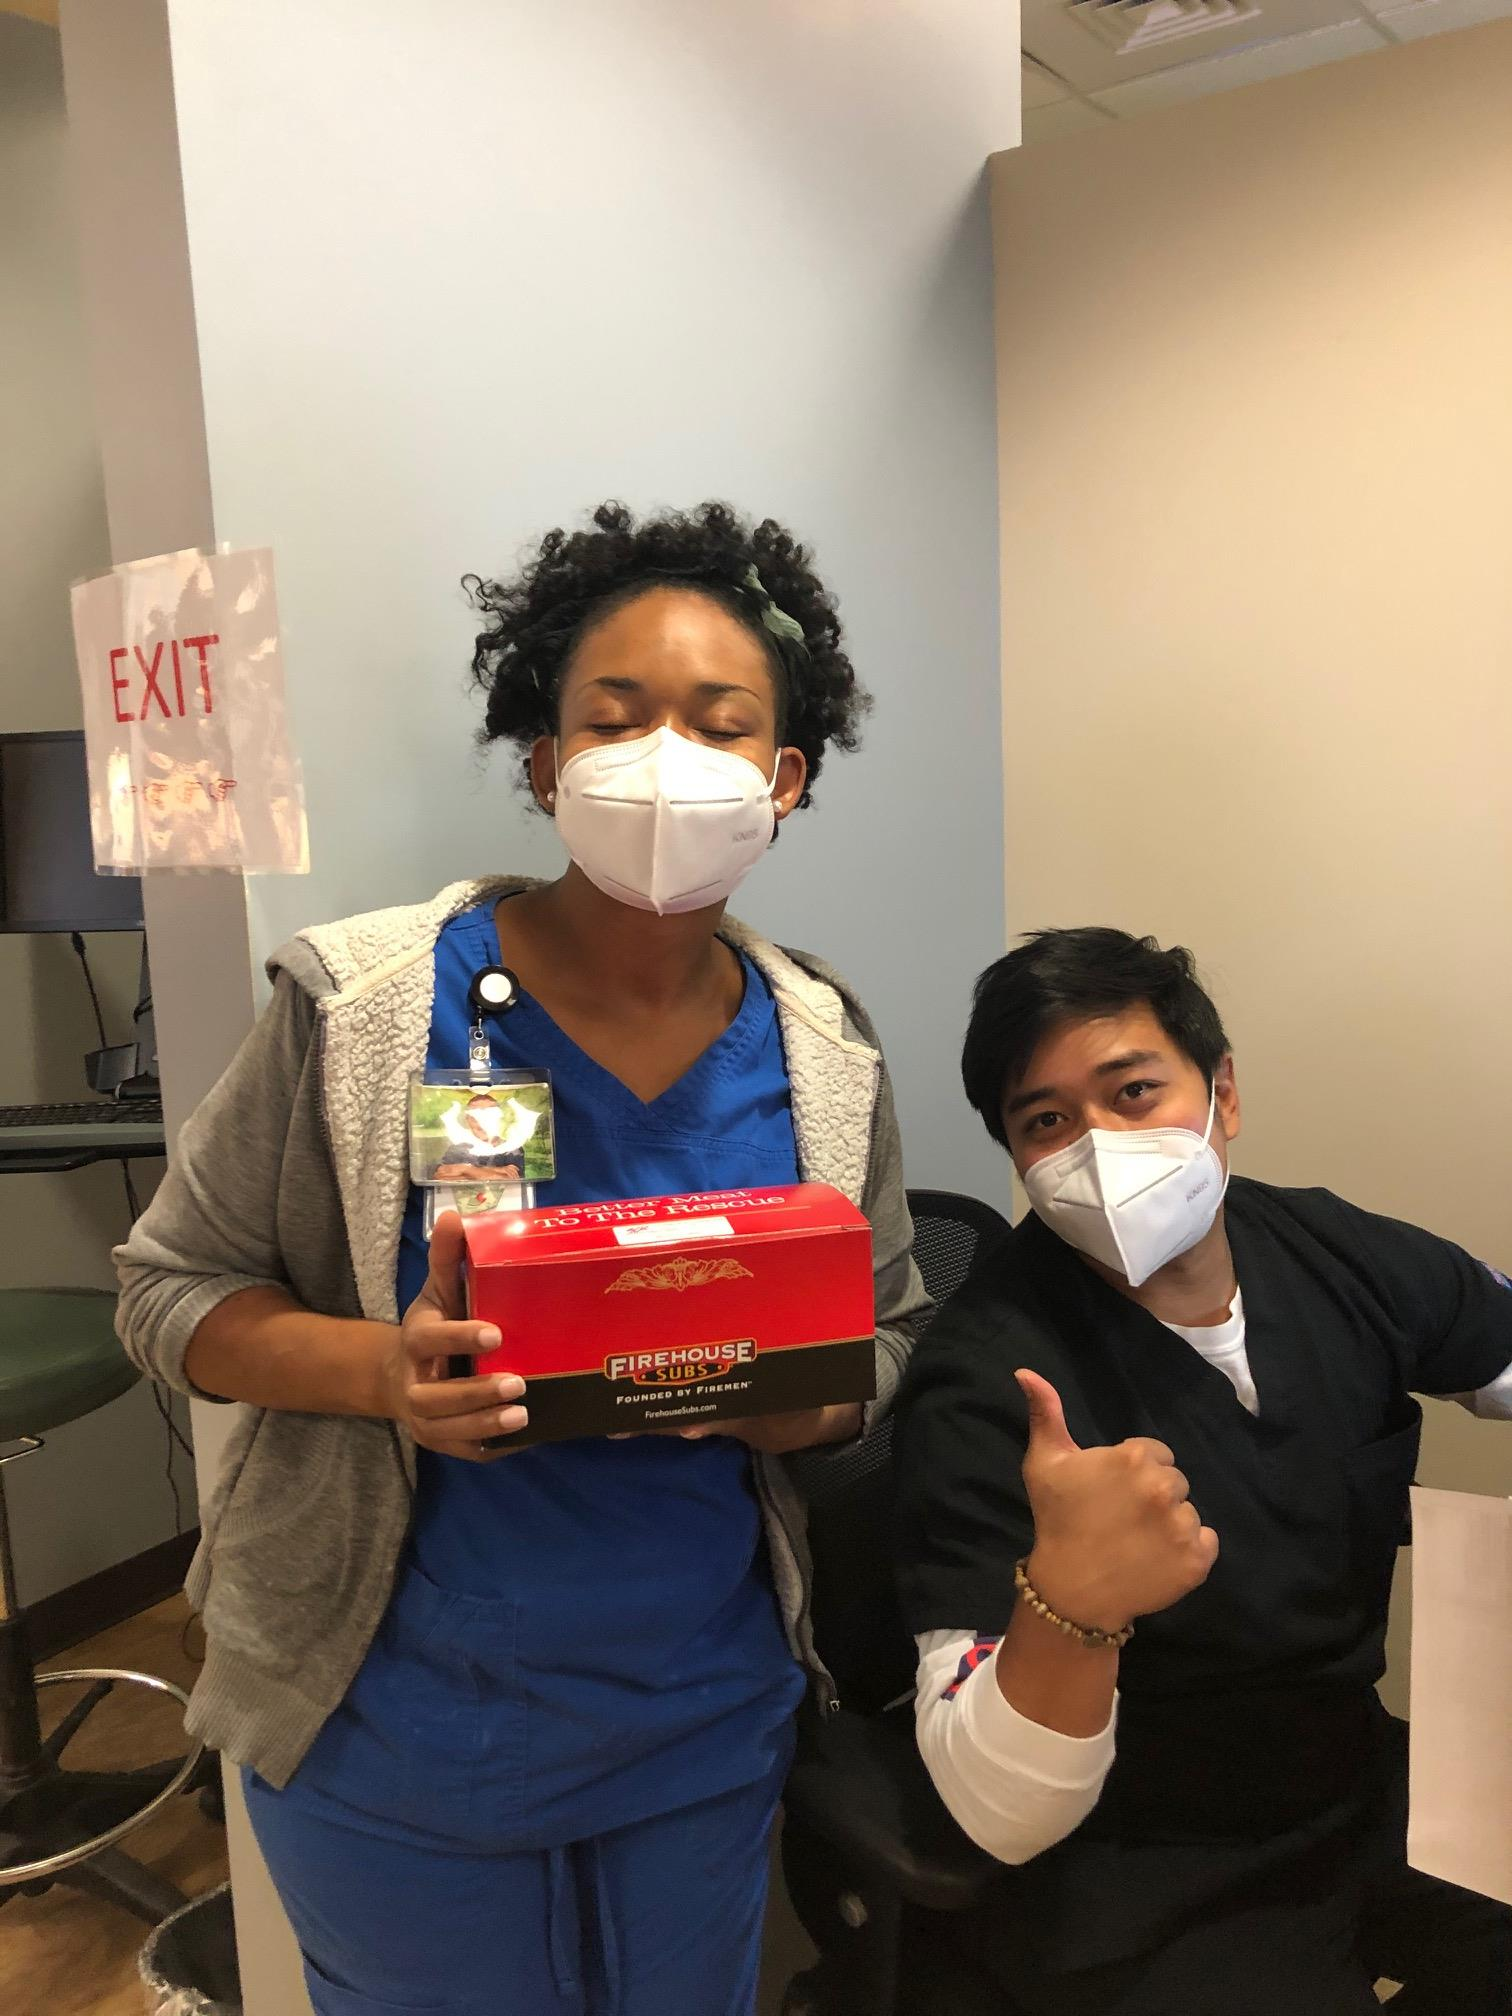 In a hallway at Palmetto Primary Urgent Care, two employees next to an exit sign wear face masks, one in blue scrubs smiling as she stands holding a box from Firehouse Subs and the other in black scrubs, seated, giving a thumbs up.